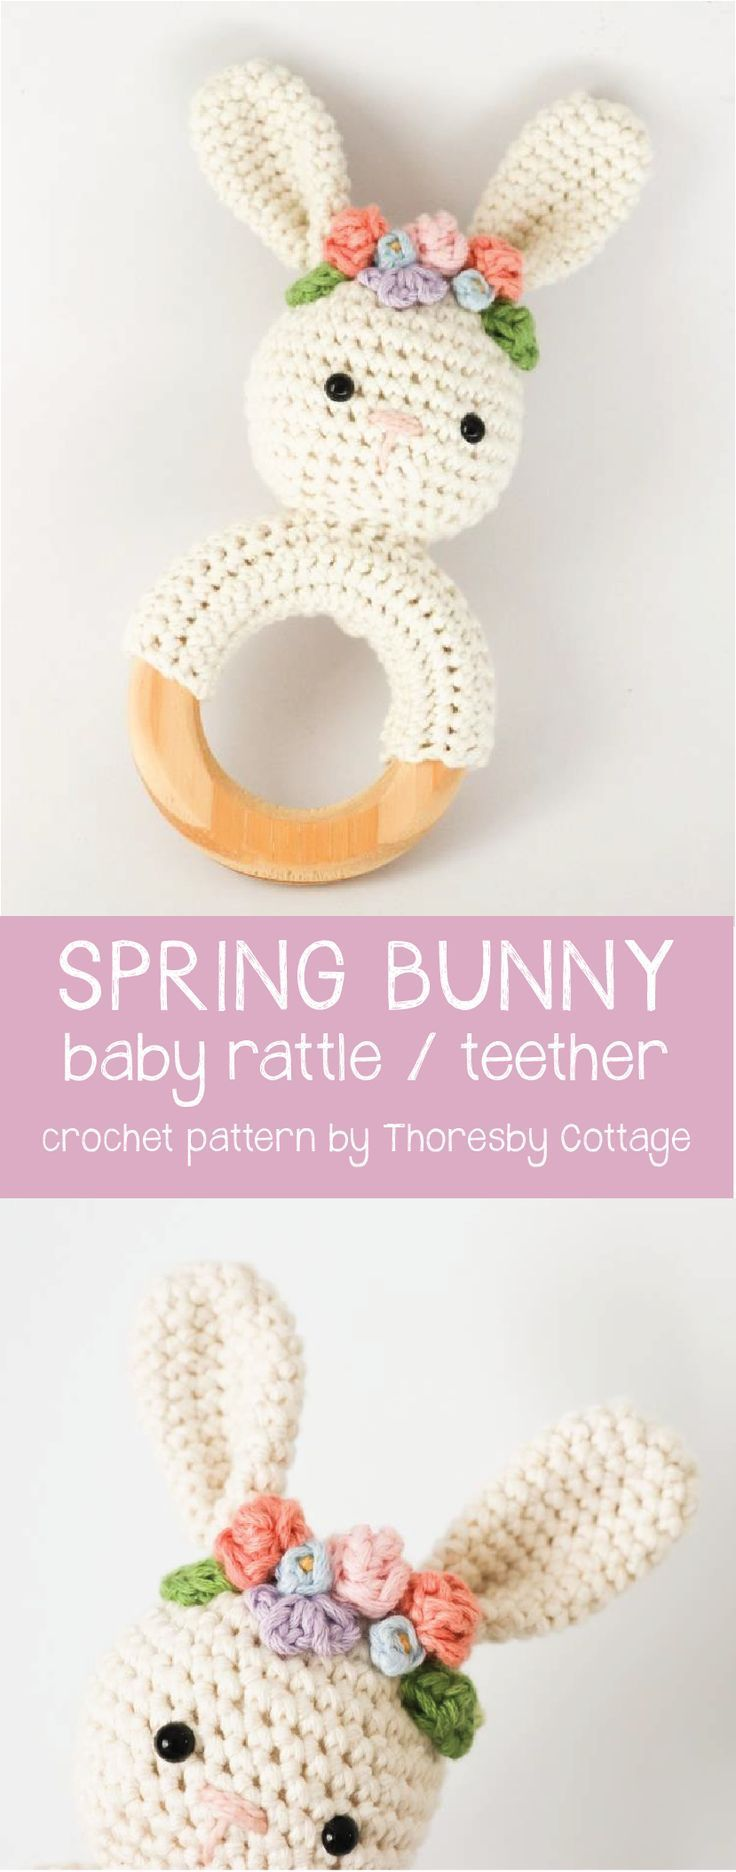 Photo of Spring bunny rattle crochet pattern | Bunny with flower crown